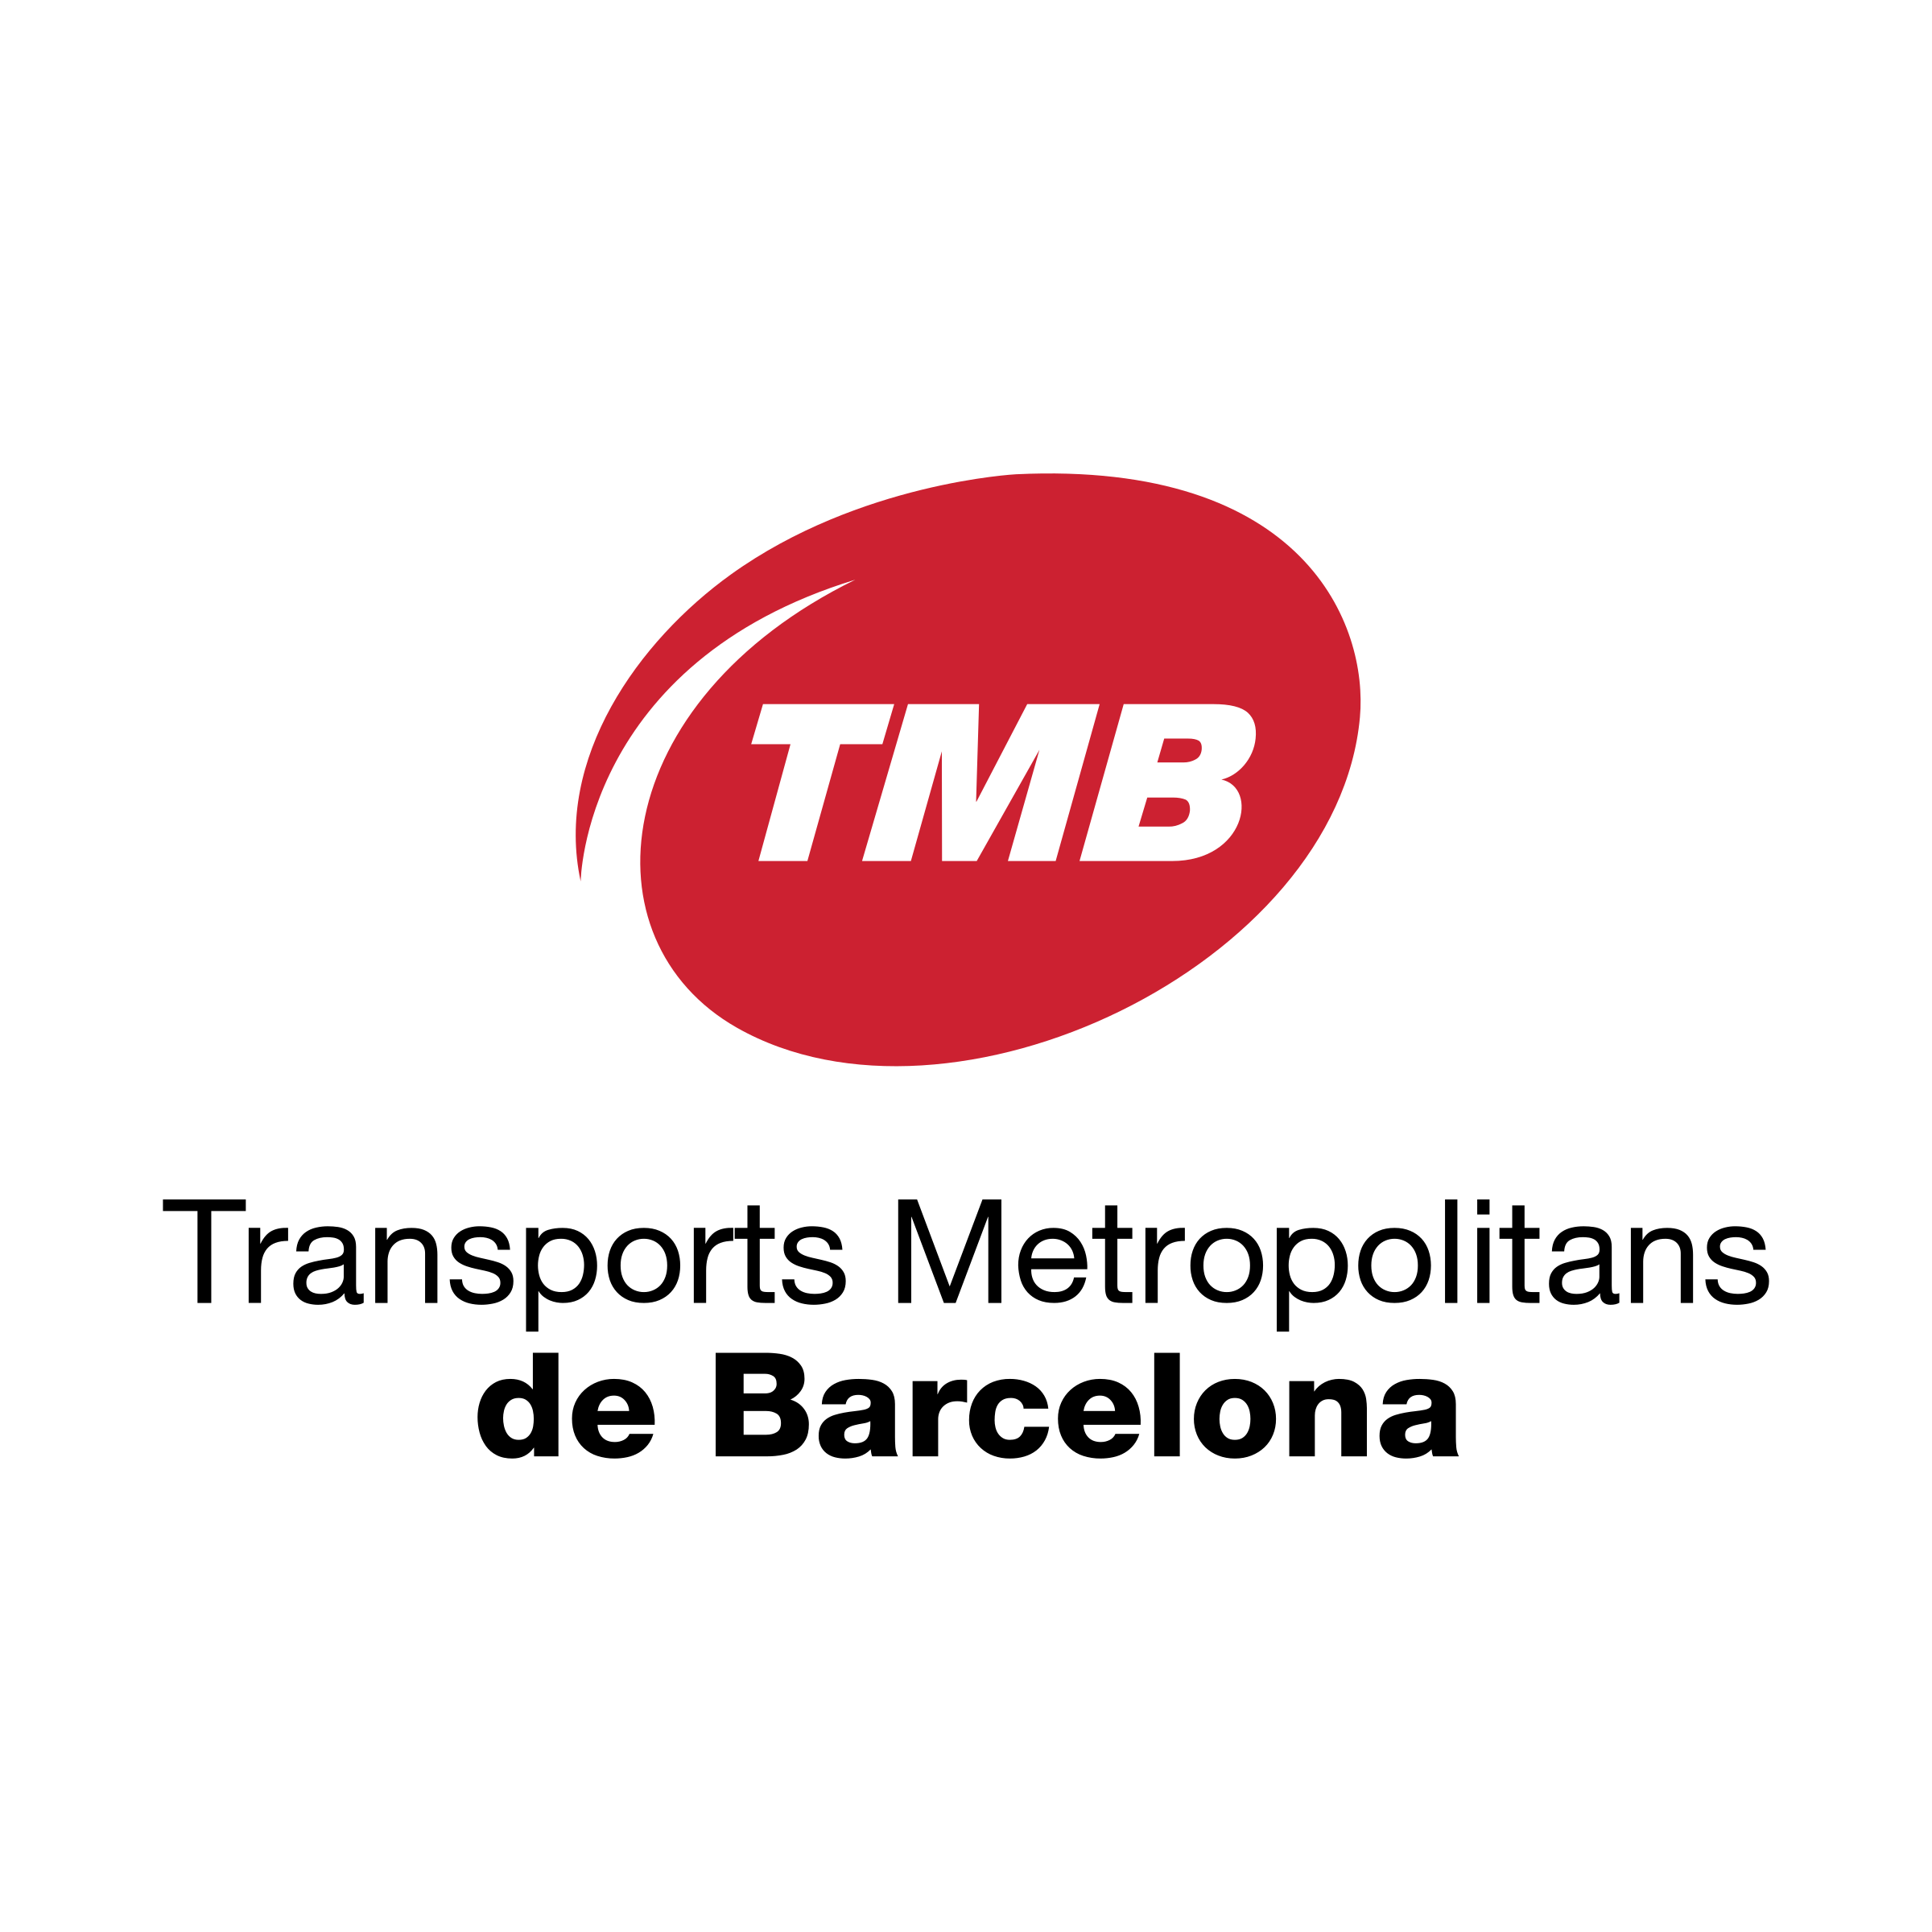 tmb-logo-png-transparent